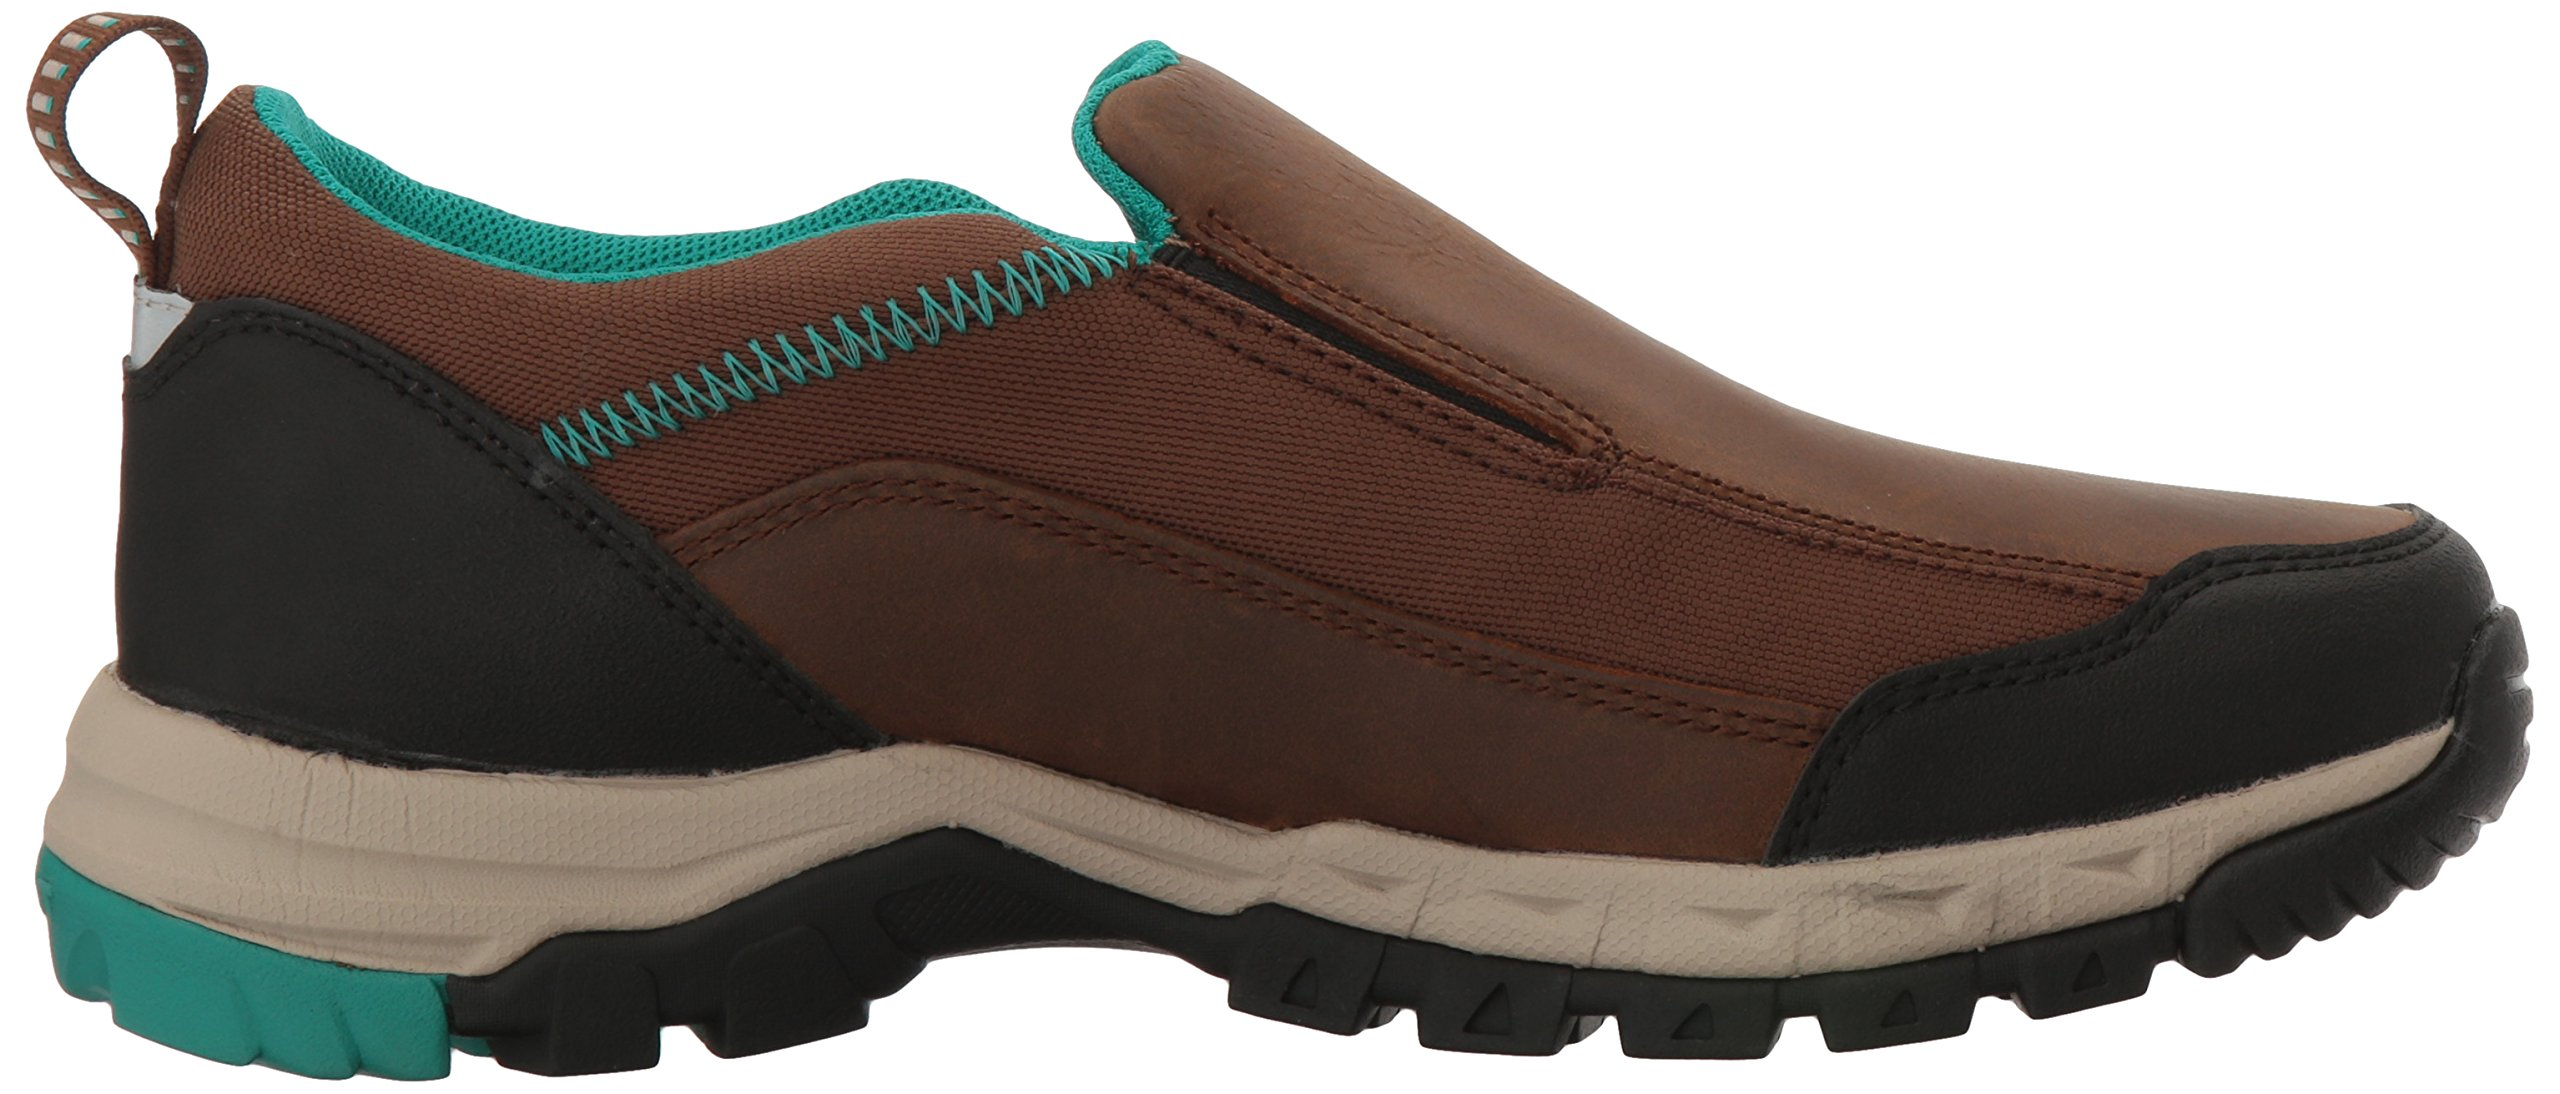 Ariat Women's Skyline Slip-on Hiking Shoe, Taupe, 8 B US by Ariat (Image #7)